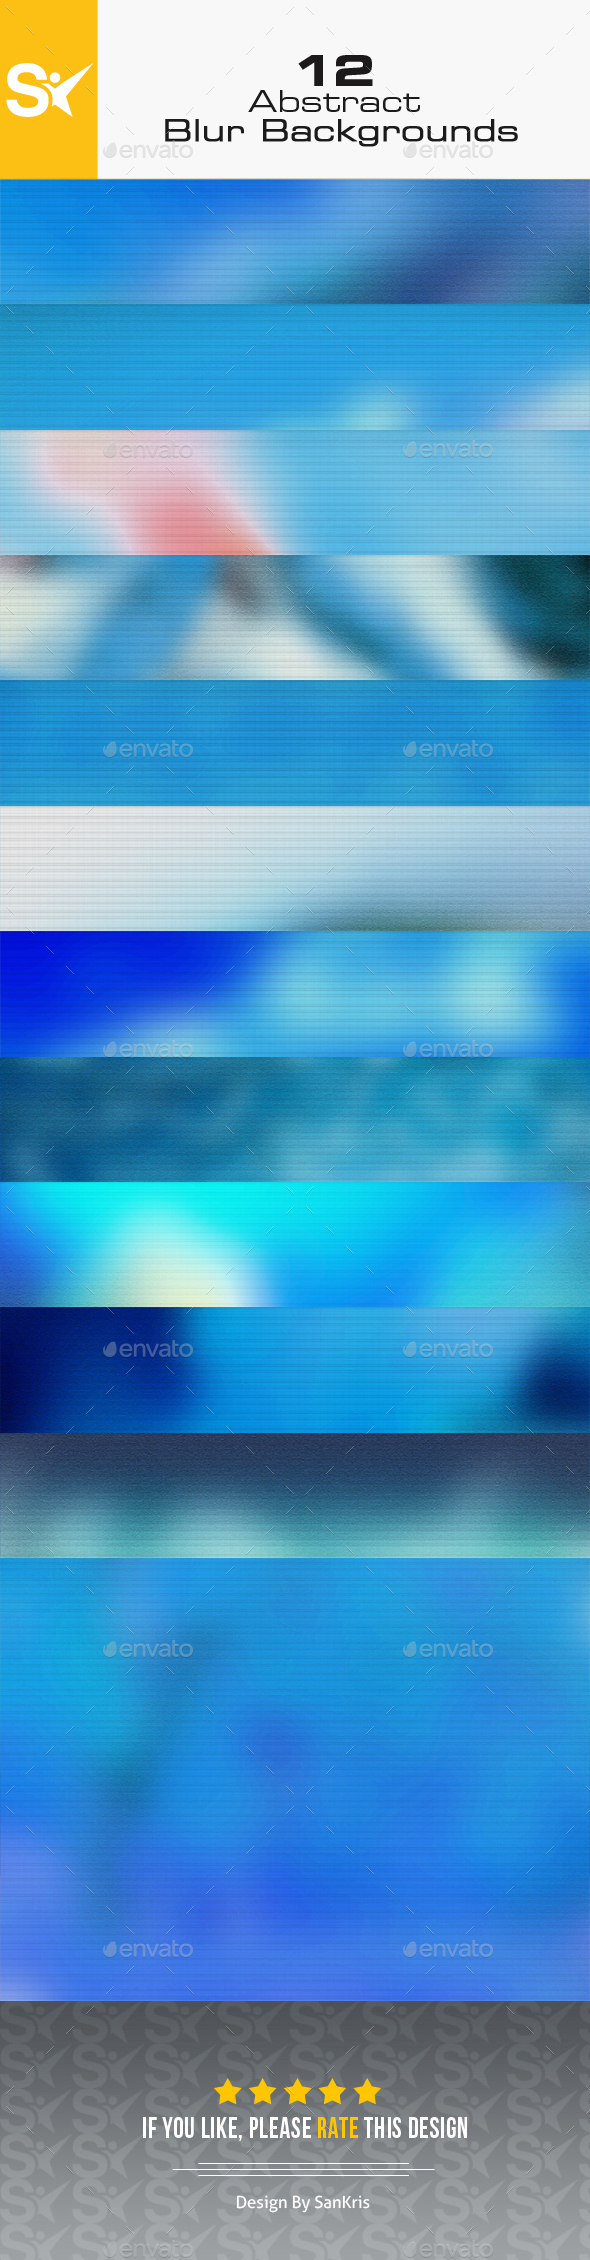 12 Abstract Backgrounds Vol.4 - Abstract Backgrounds